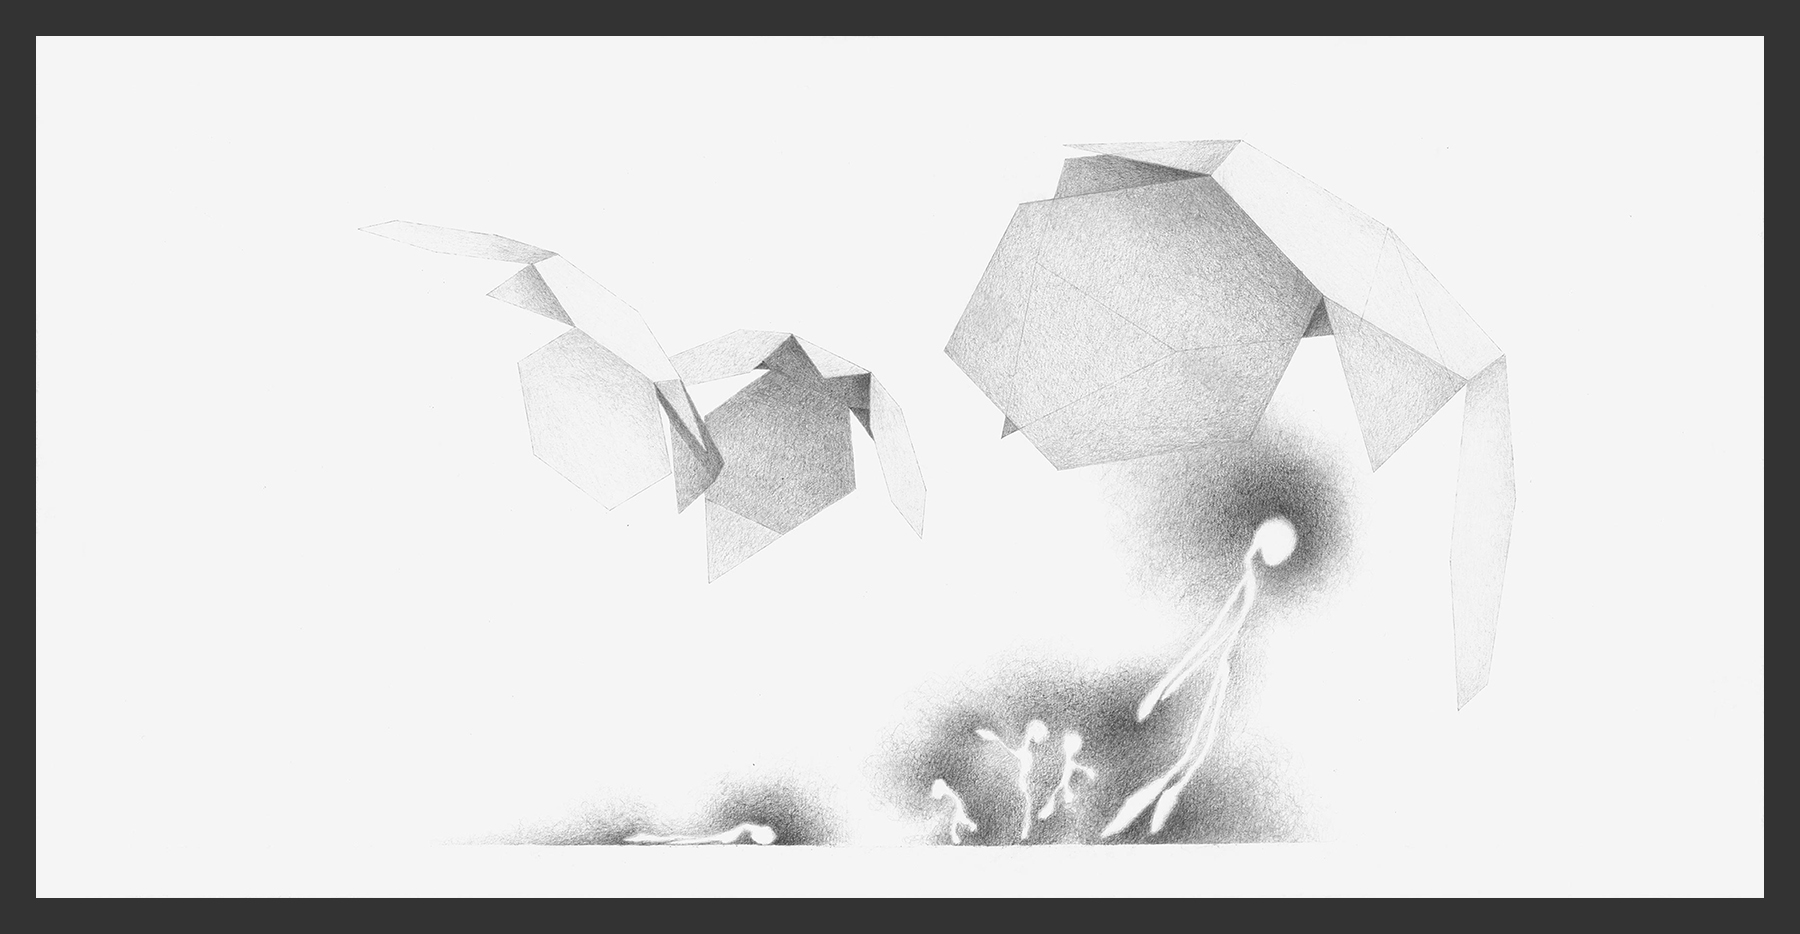 5-Website-Meditation-V-Graphite-12x24-Astrid-Muller-Karger